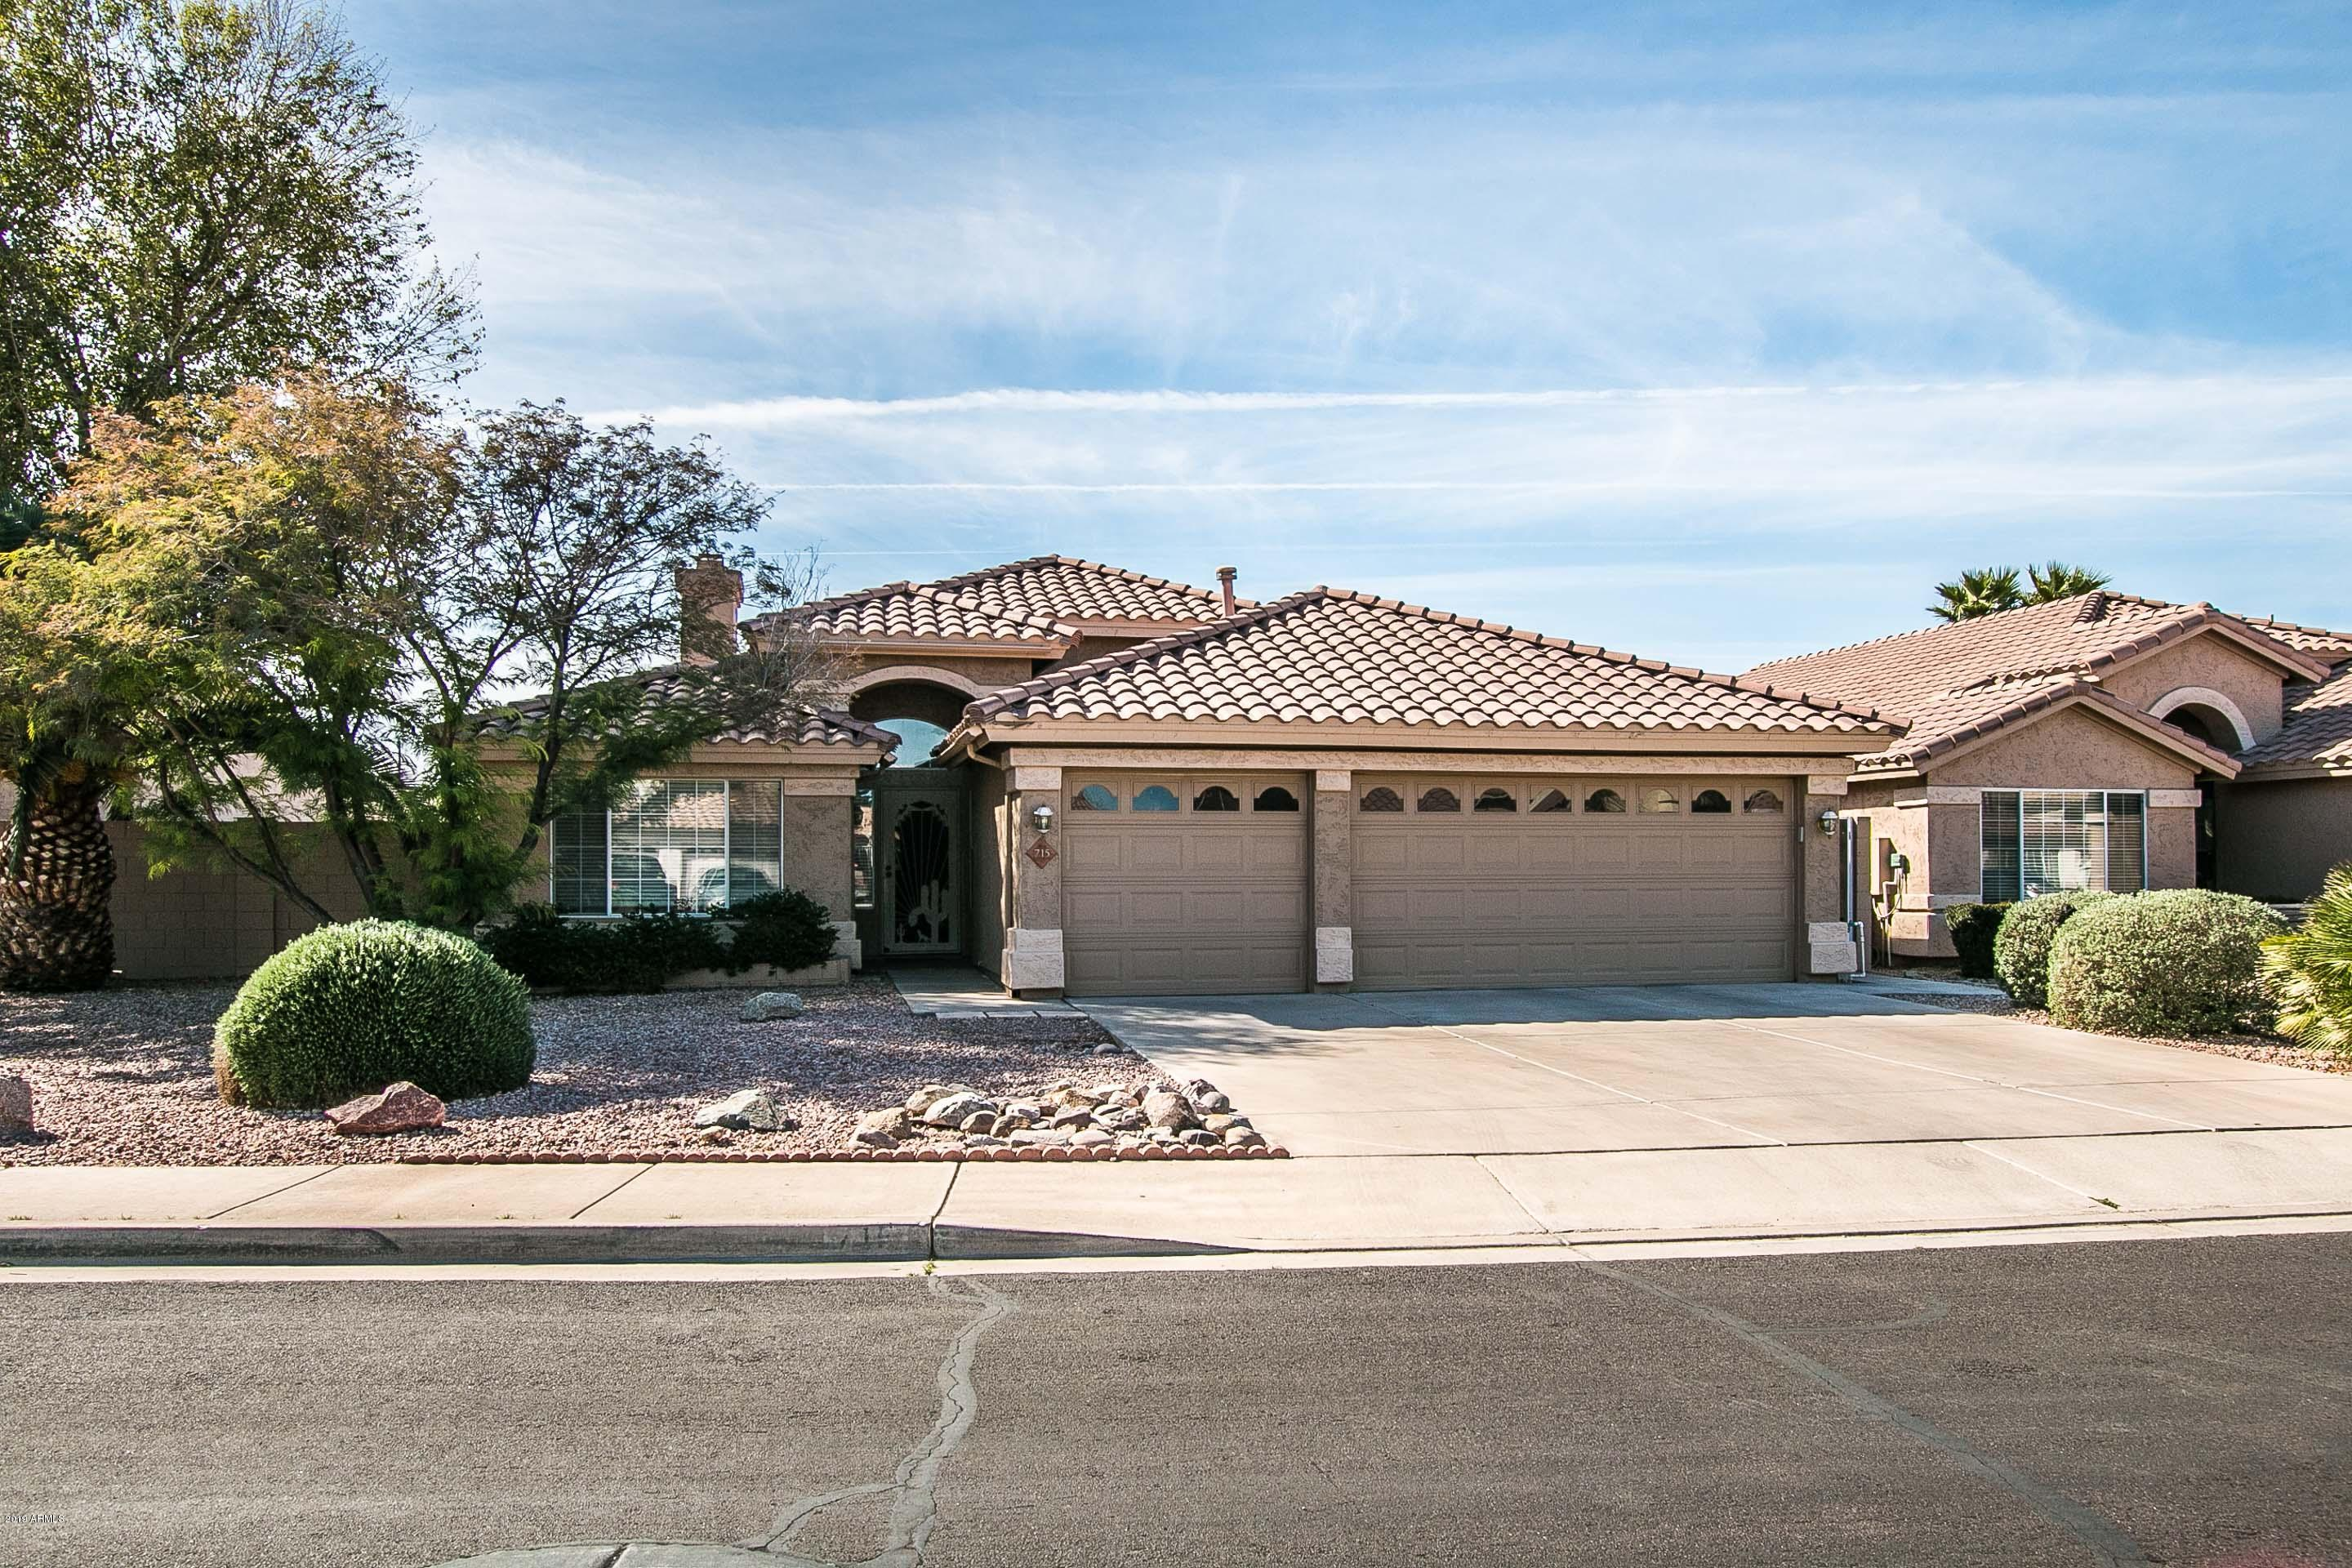 Photo of 715 W DOUGLAS Avenue, Gilbert, AZ 85233